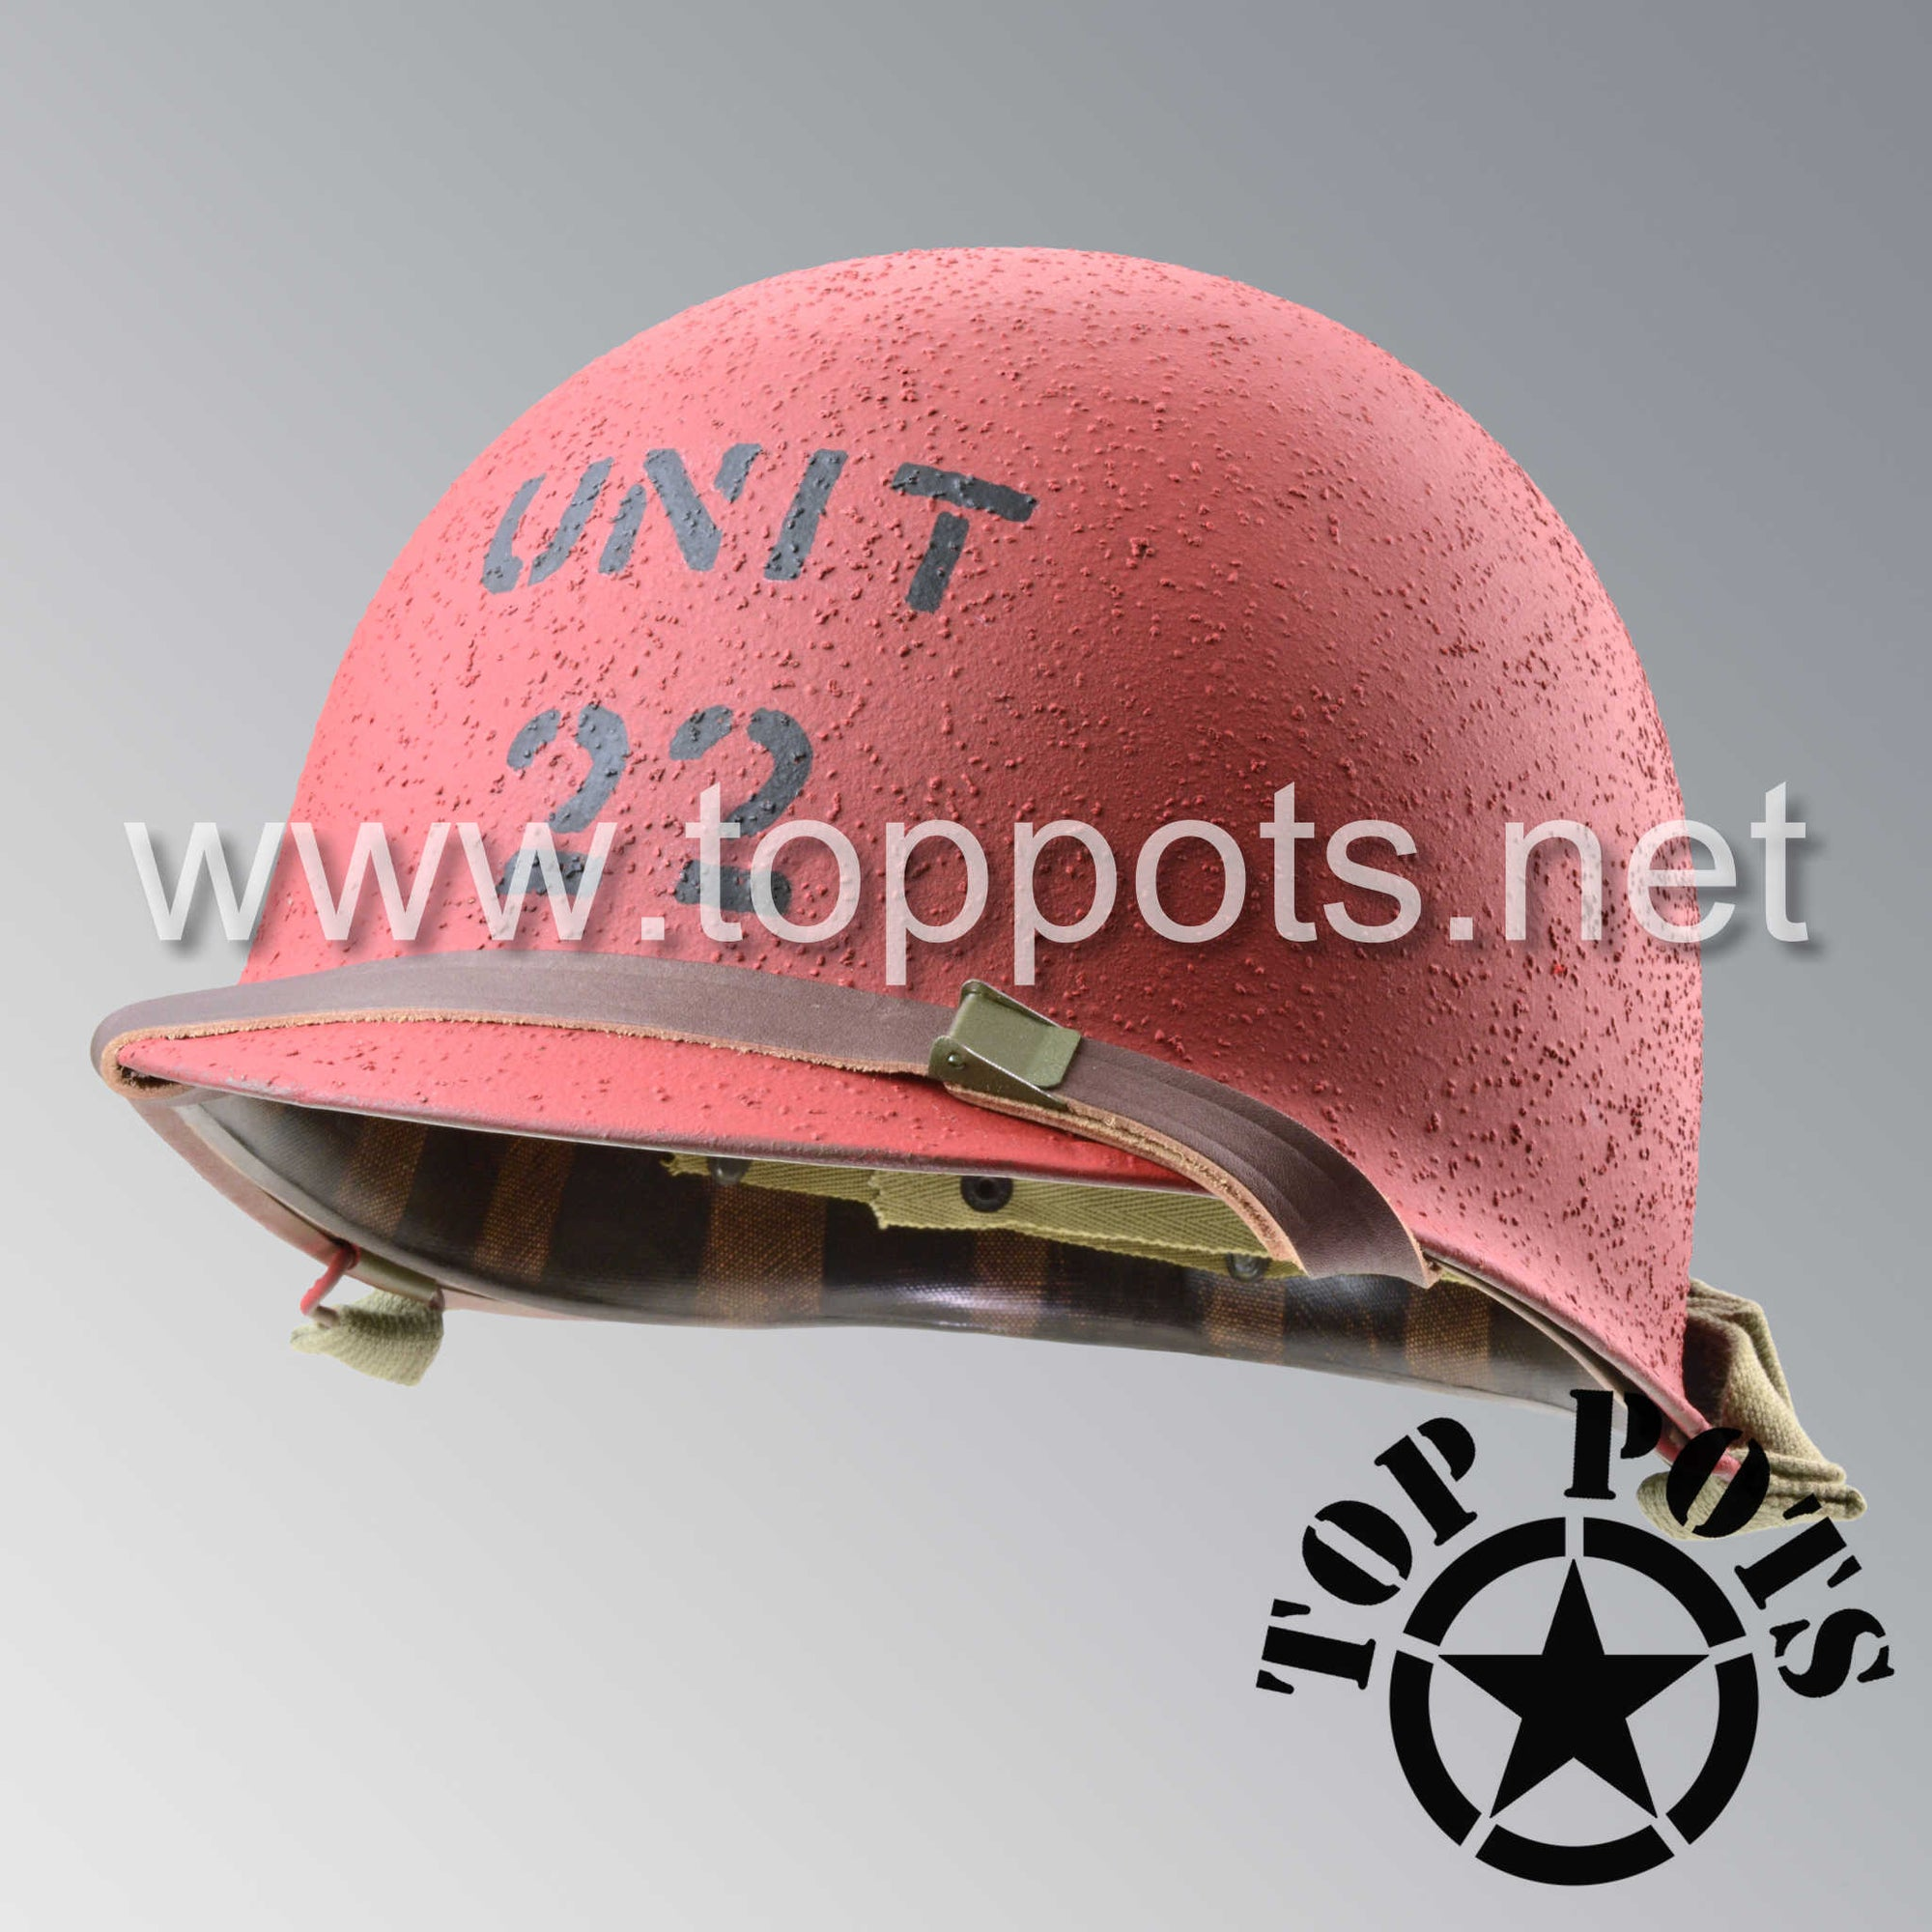 Image 1 of WWII US Navy Restored Original M1 Infantry Helmet Swivel Bale Shell and Liner with Fire Brigade USN Emblem